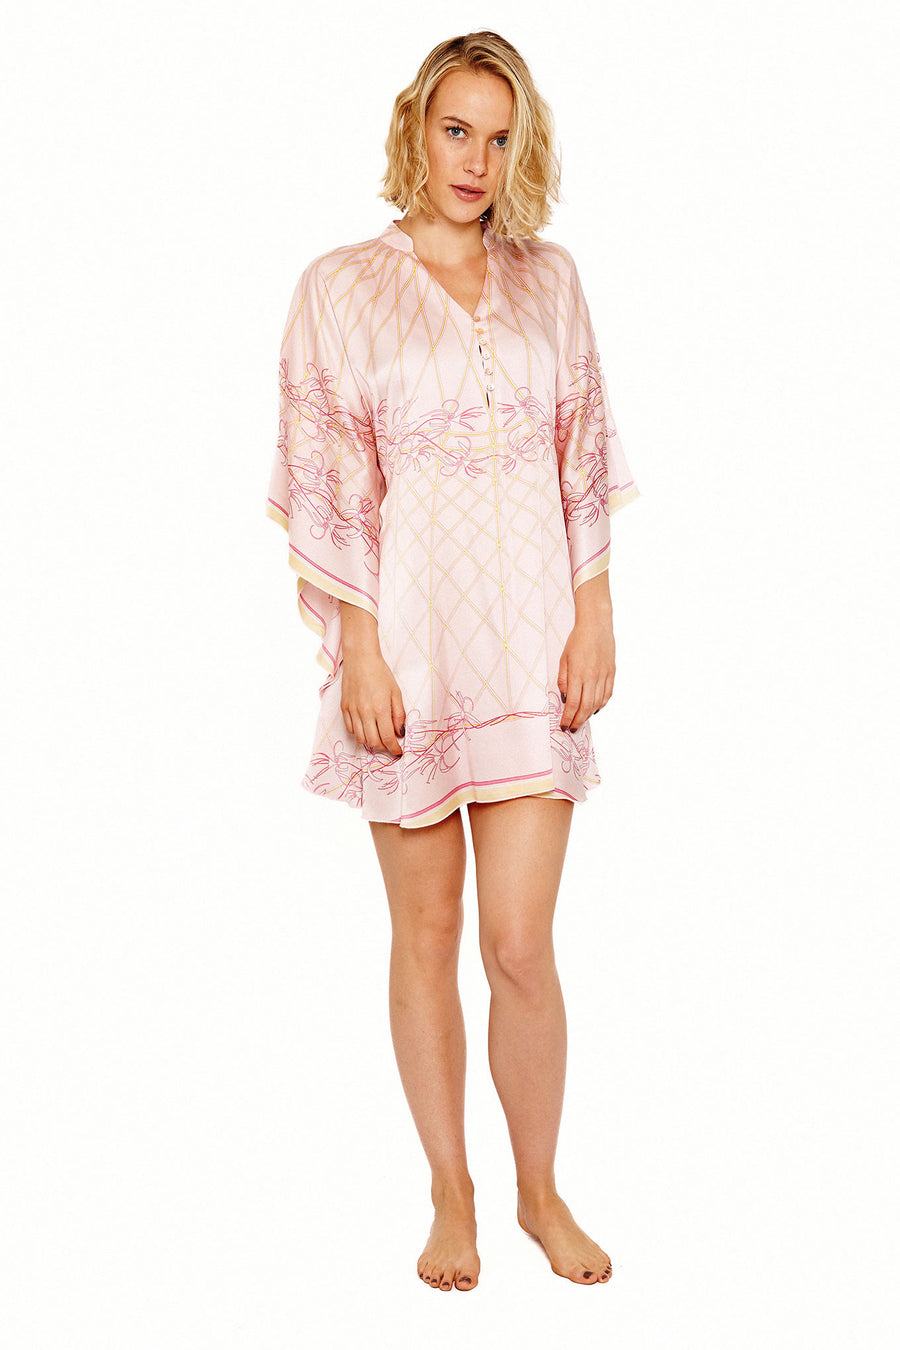 Lotty B Short Kaftan in Silk Crepe-de-Chine (Spiderlily Peach Pink)